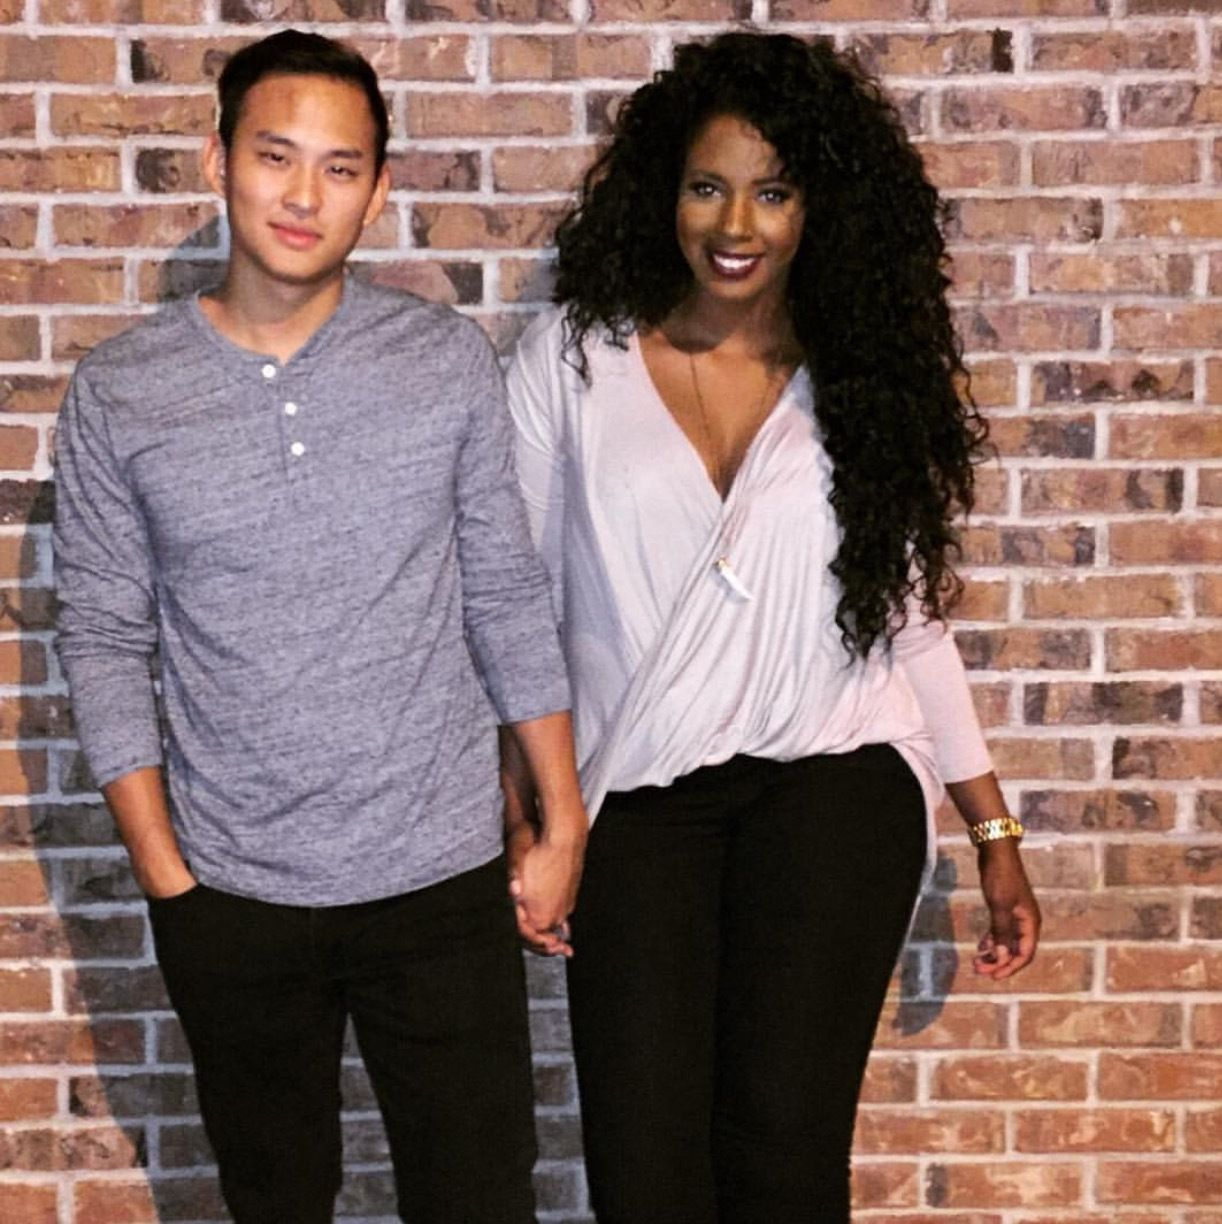 Korean guy dating black girl